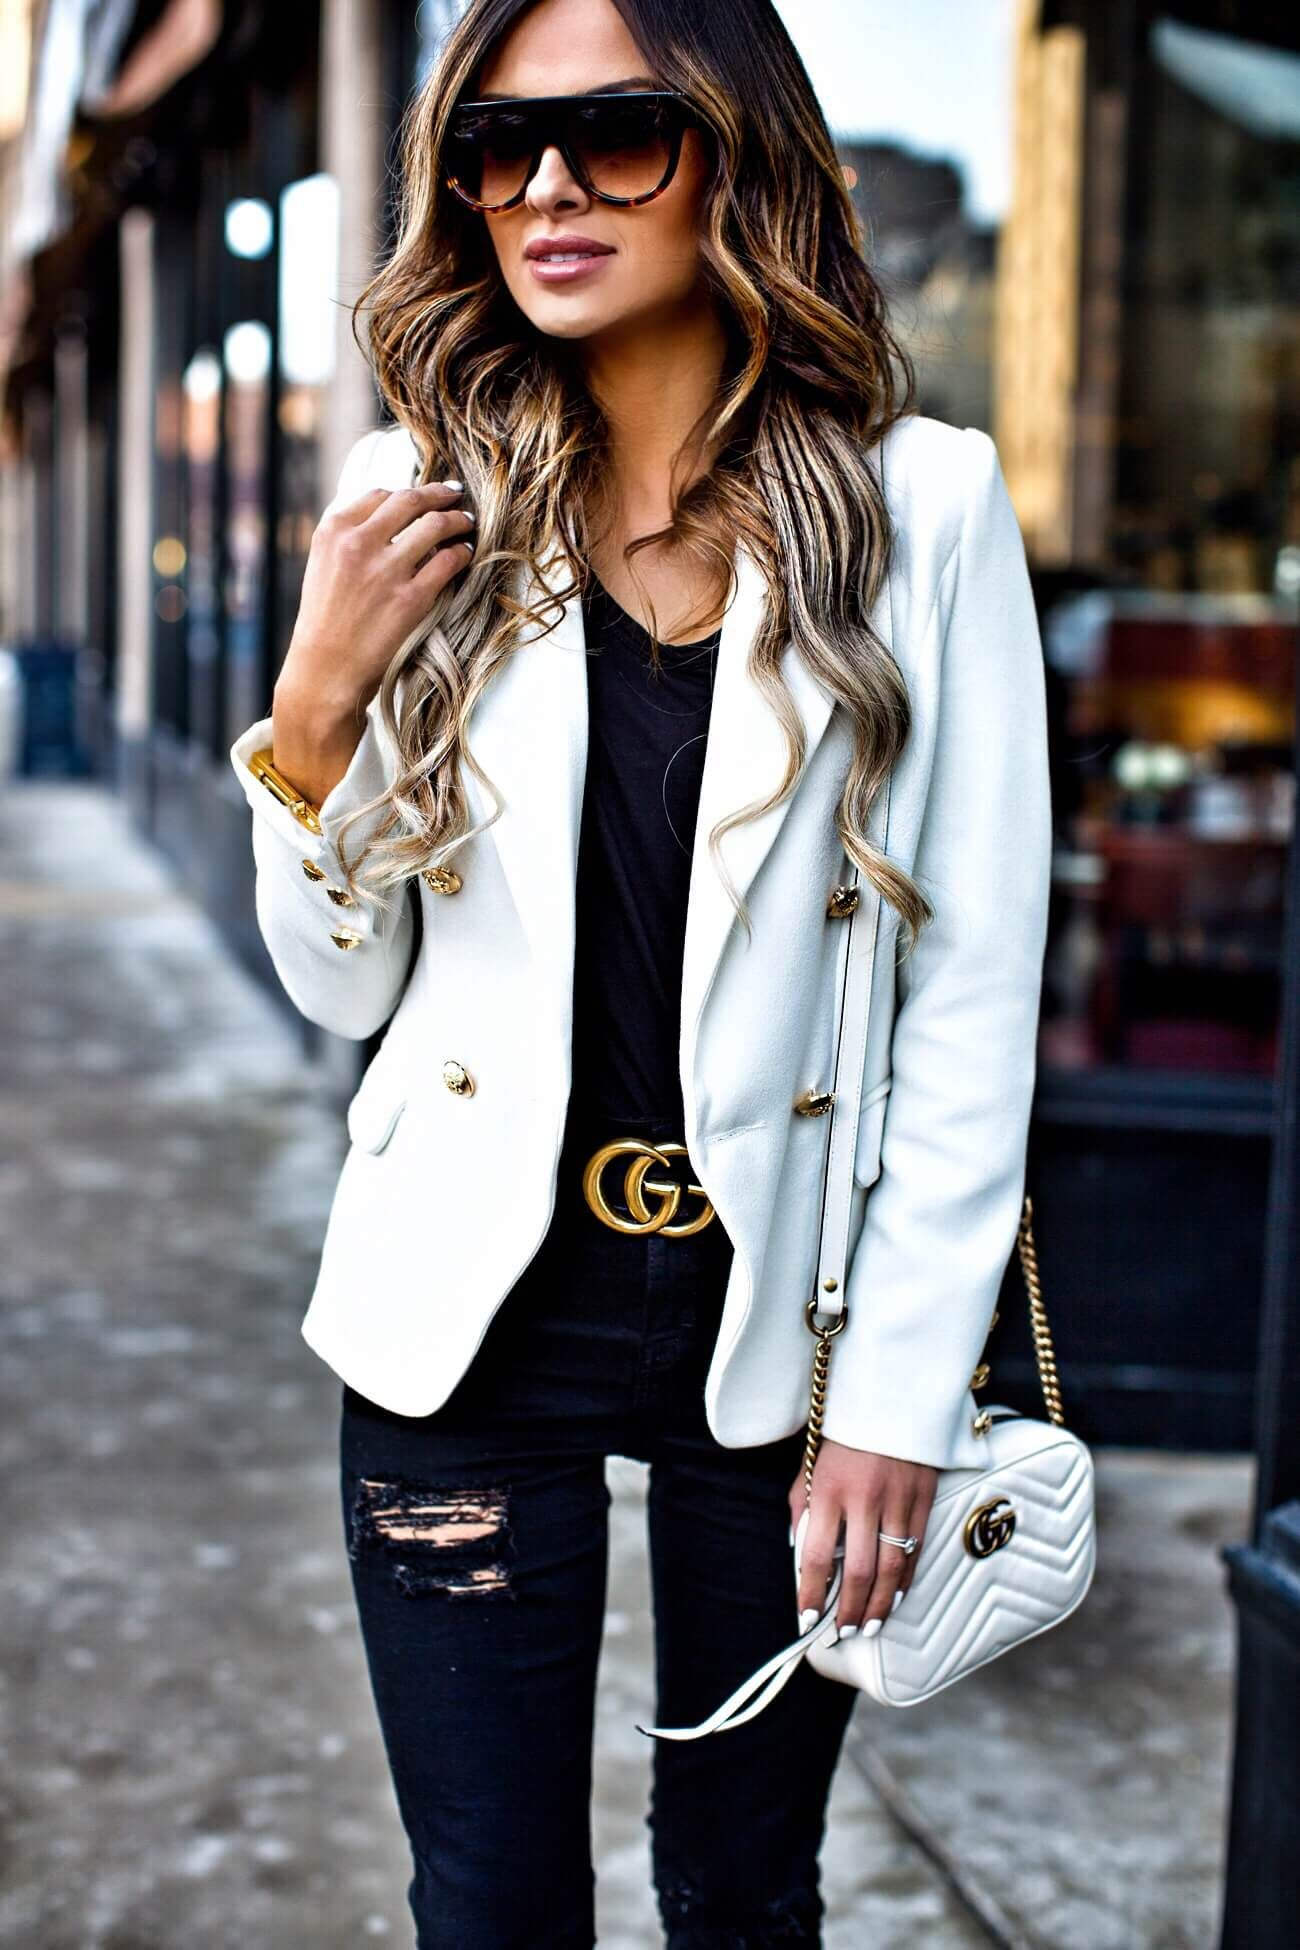 462baddbe3f0 fashion blogger mia mia mine wearing a gucci double g buckle belt and a white  marmont bag